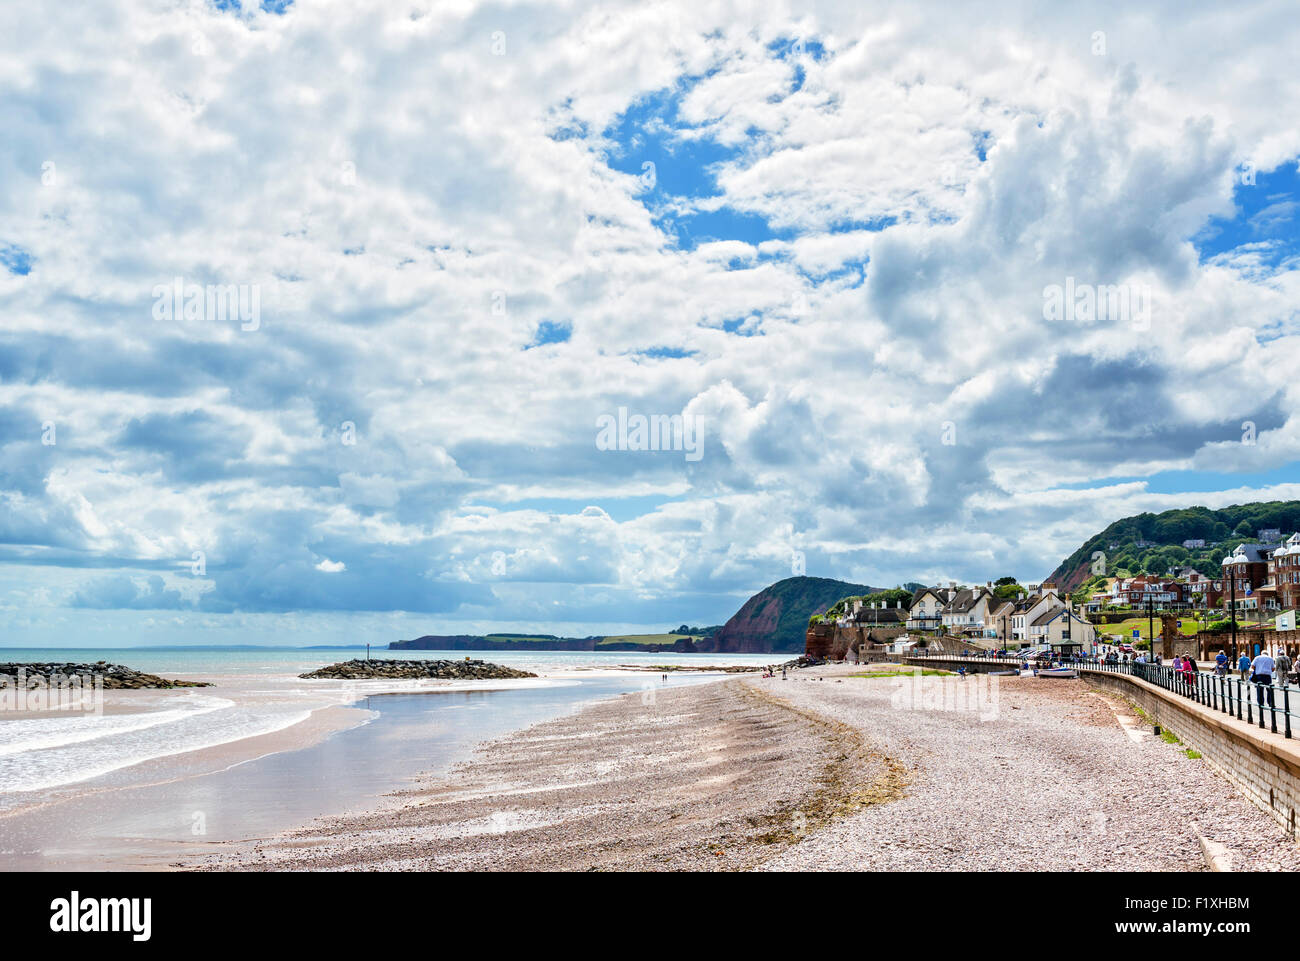 The beach in Sidmouth, Devon, England, UK - Stock Image